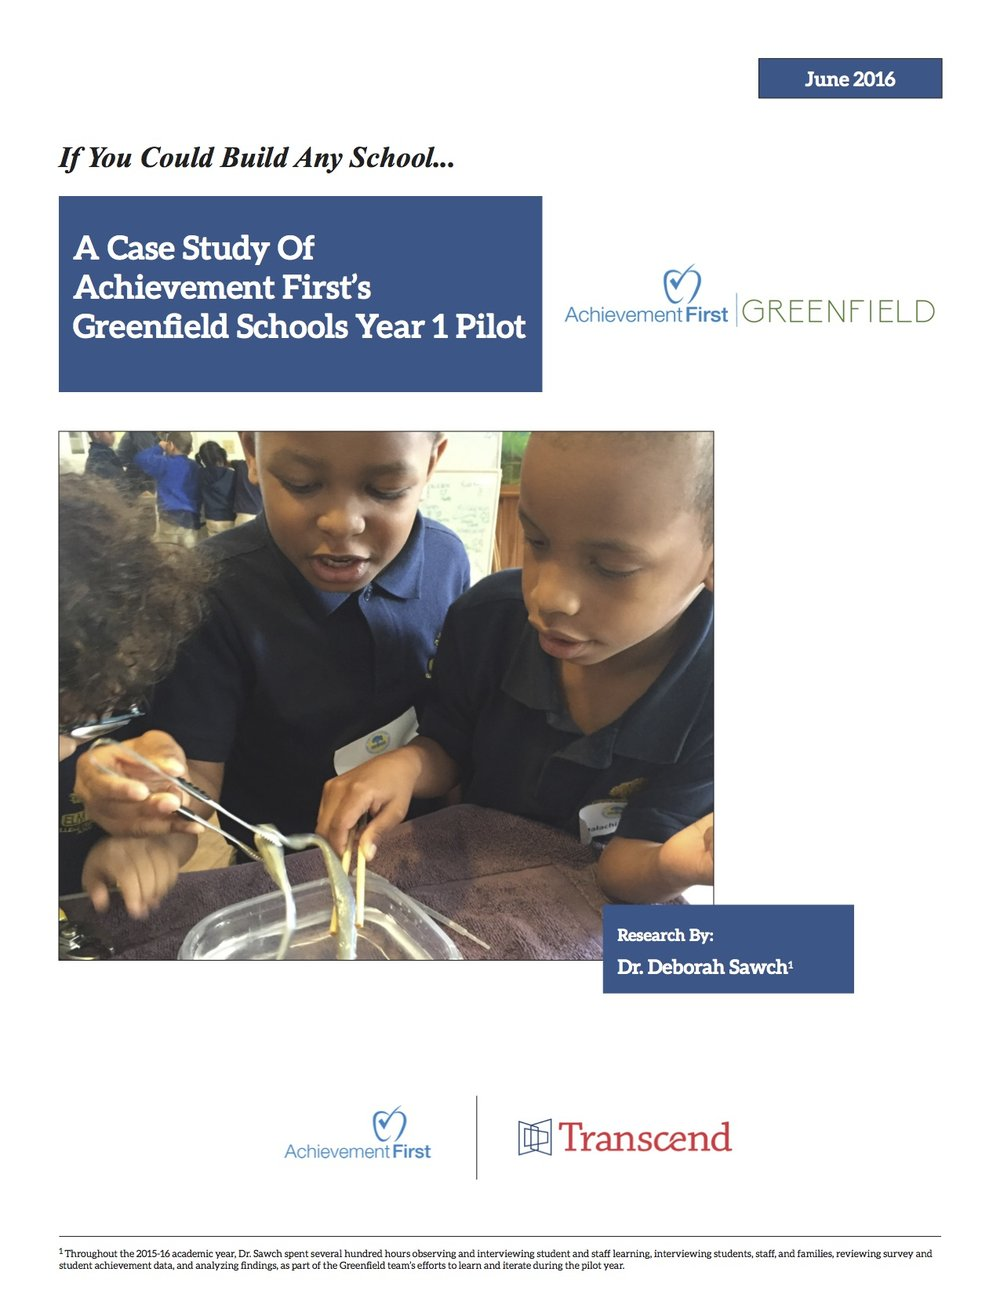 IF YOU COULD BUILD ANY SCHOOL: A CASE STUDY OF ACHIEVEMENT FIRST'S GREENFIELD SCHOOLS PILOT   The story of Greenfield's pilot describes the launch of what would become a multi-year innovation effort to create a new model of school for the Achievement First network of schools.